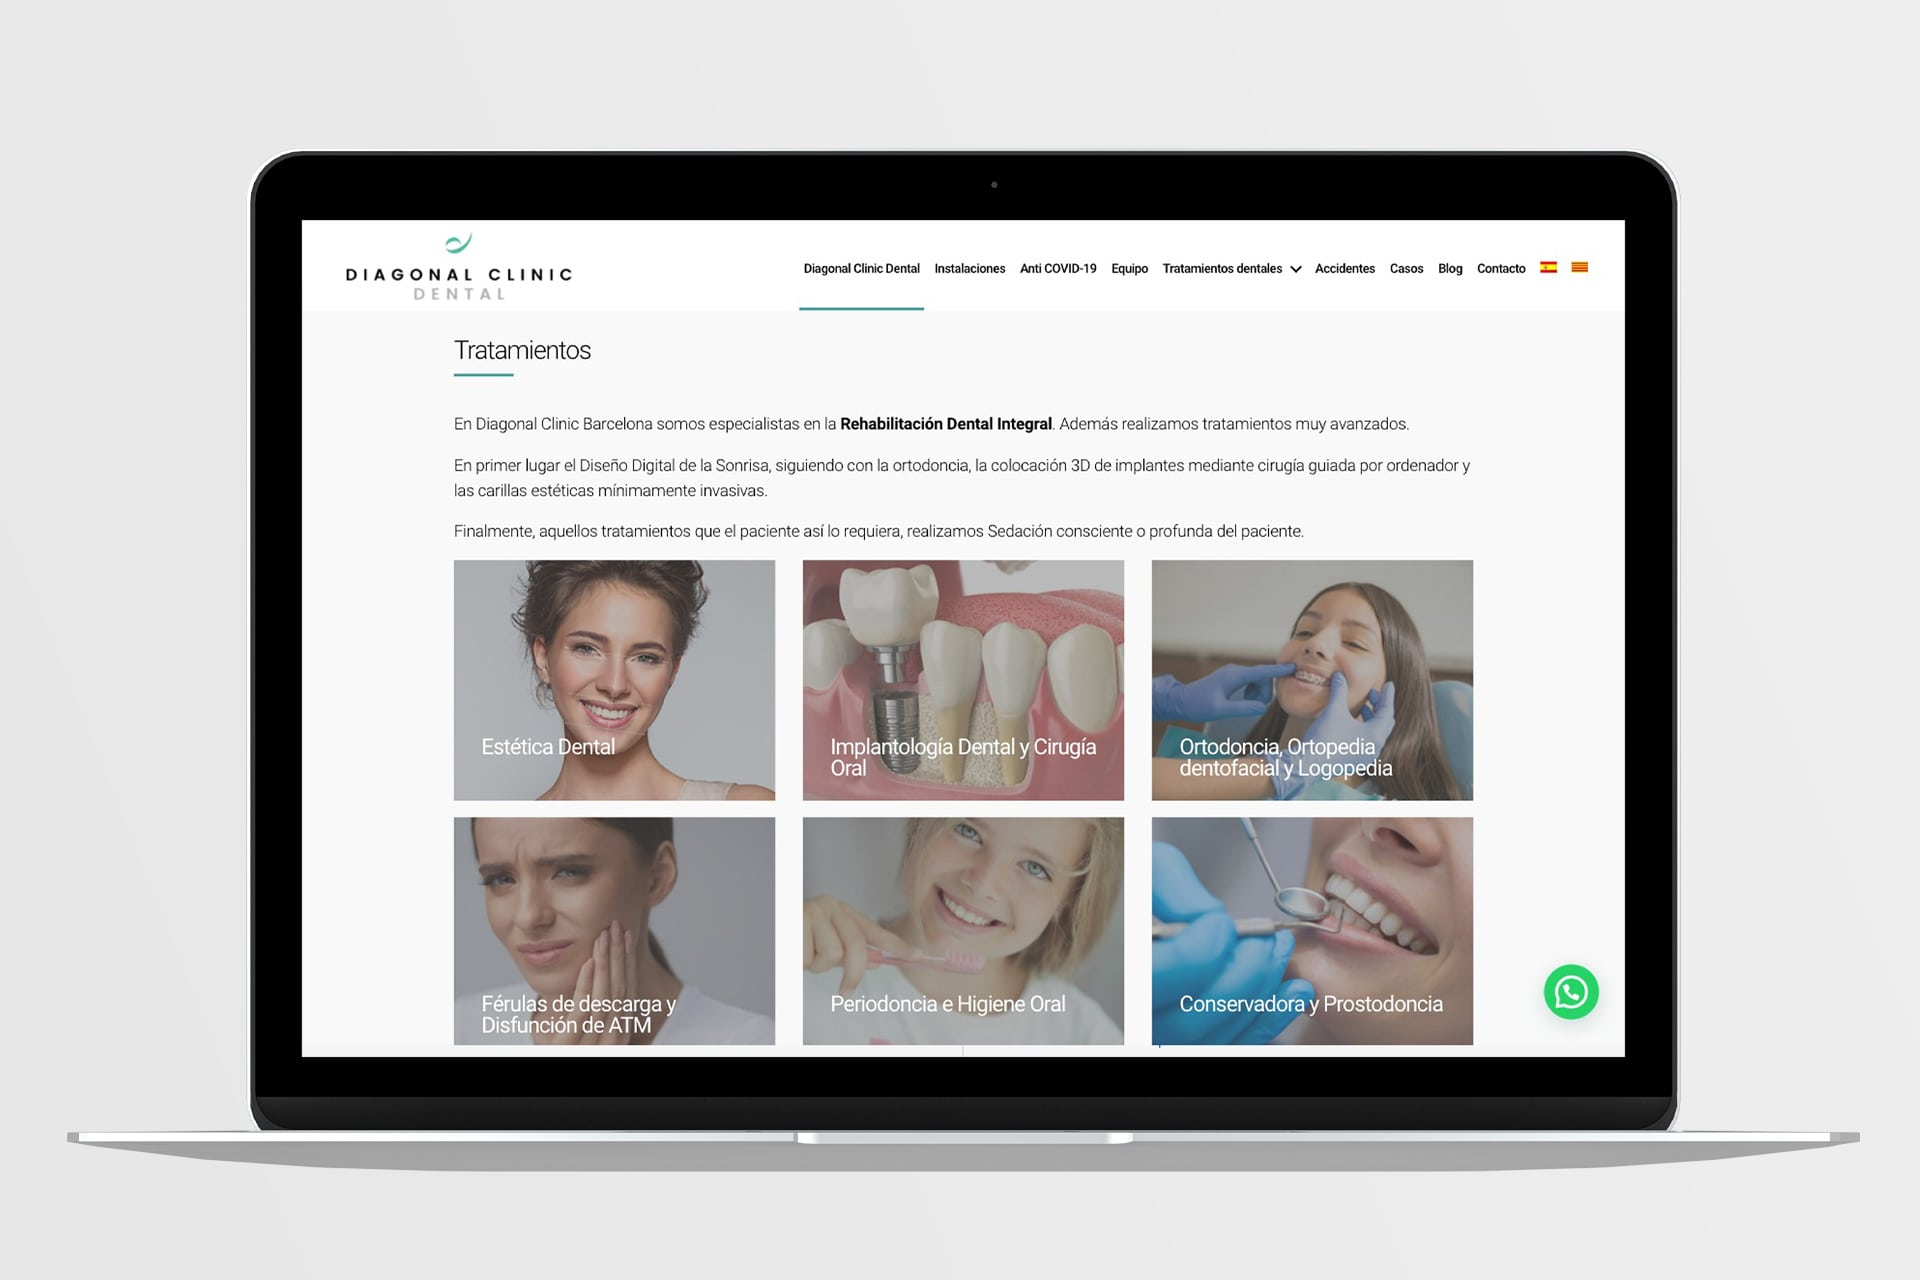 Diseño web para Diagonal Clinic Dental